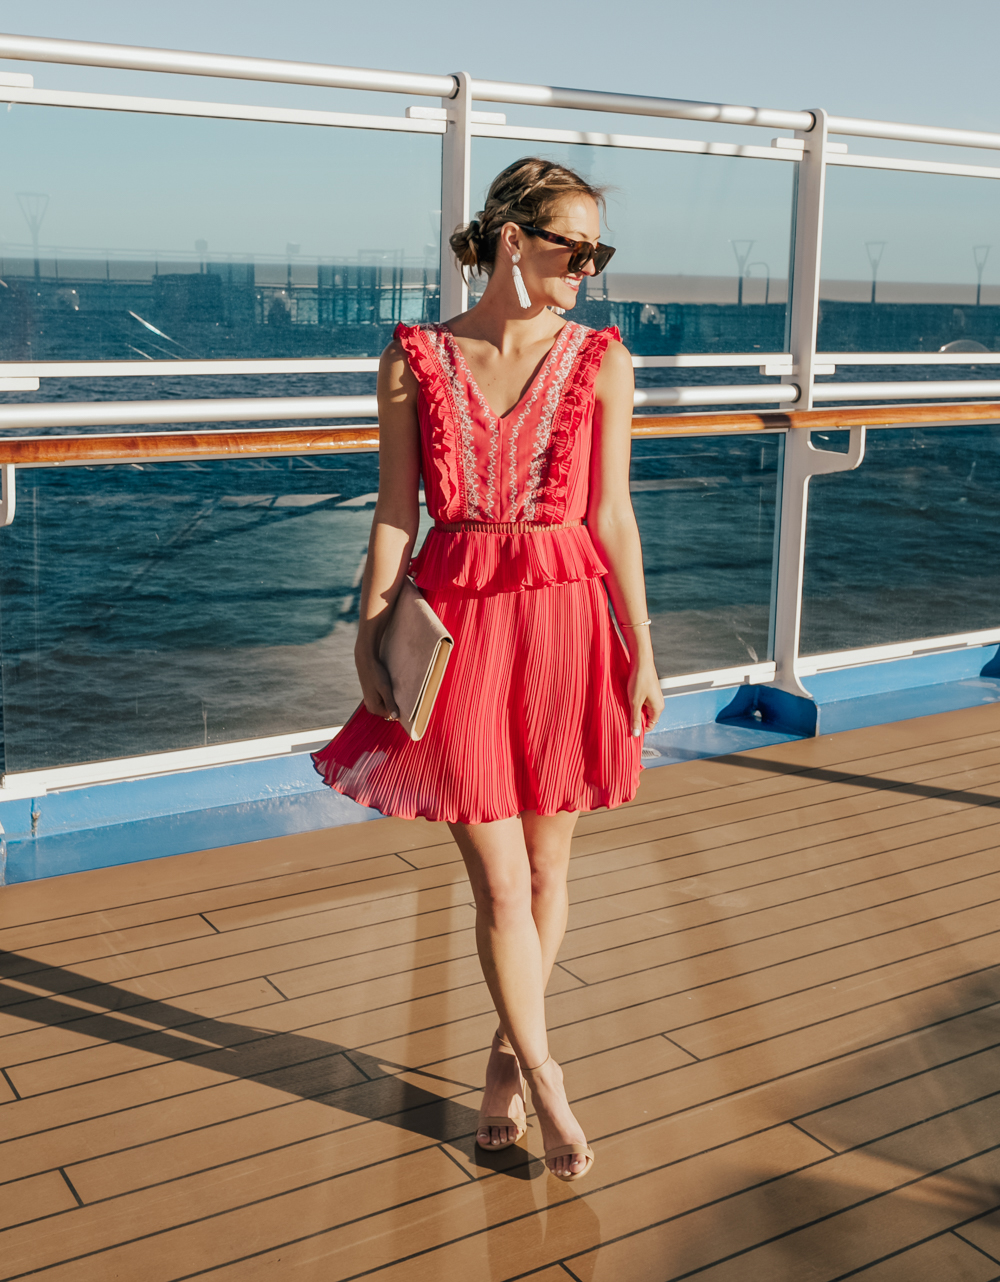 livvyland-blog-olivia-watson-travel-fashion-blogger-princess-cruises-regal-ship-what-to-do-on-board-cruise-red-dress